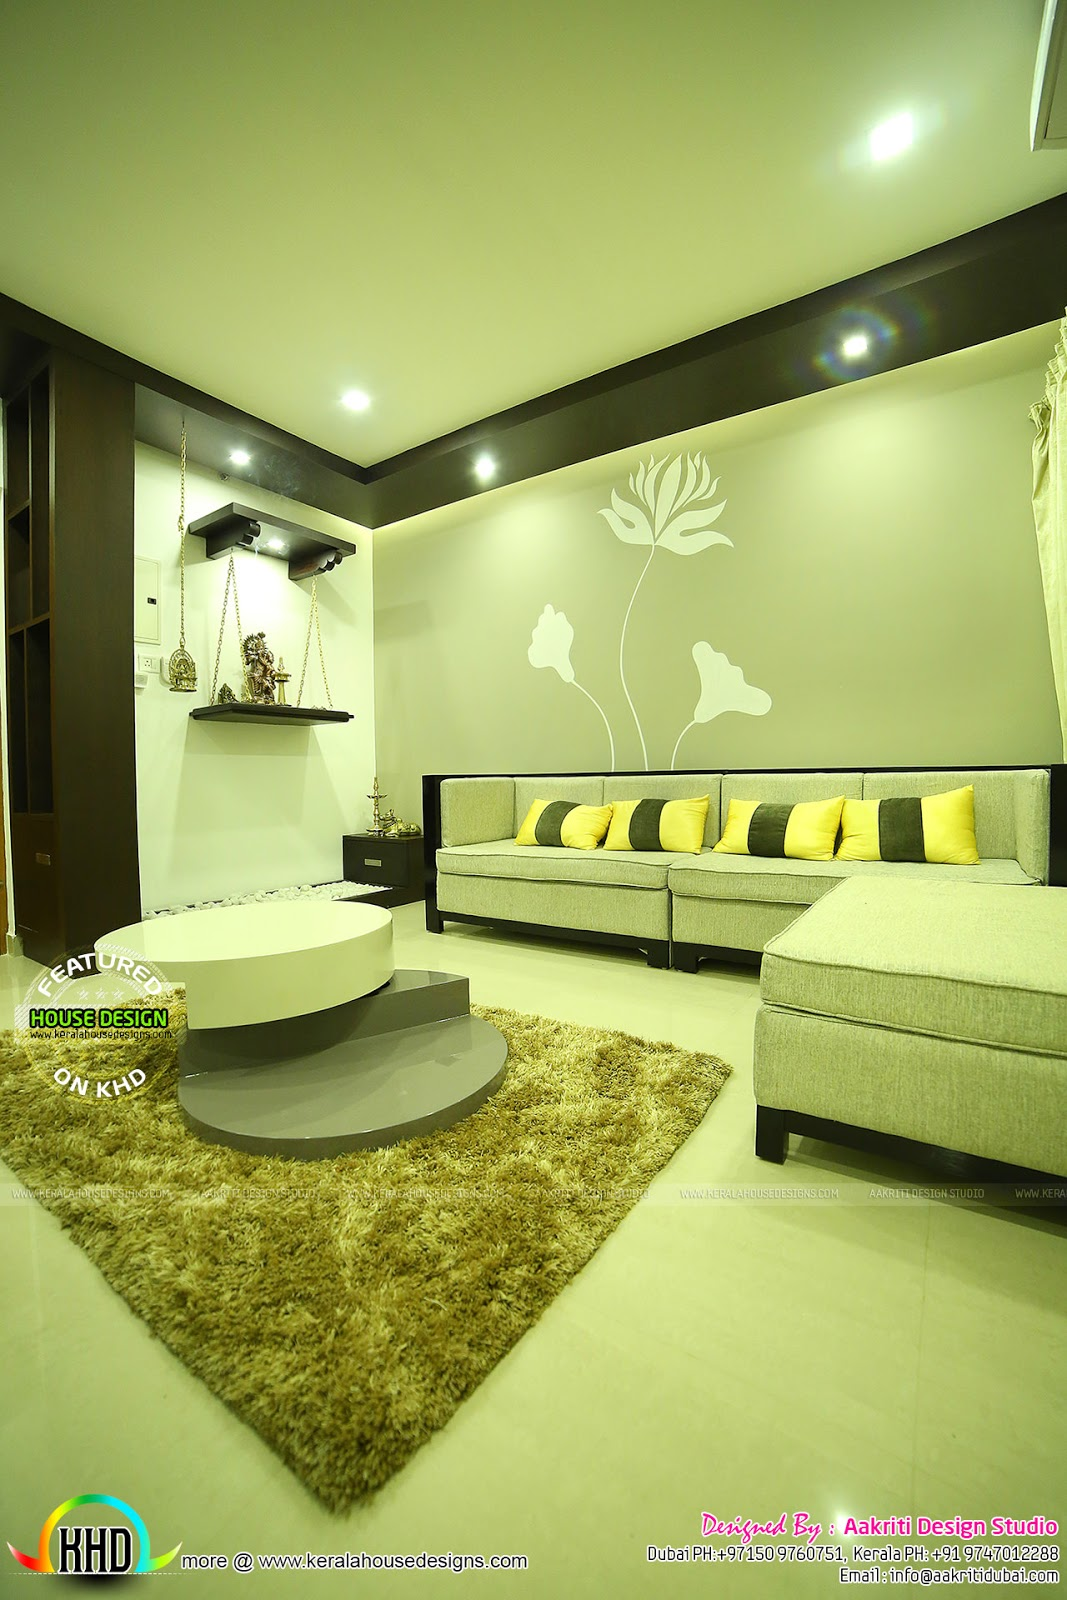 Finished Interior Designs In Kerala: Finished Interior Photos From Kannur, Kerala